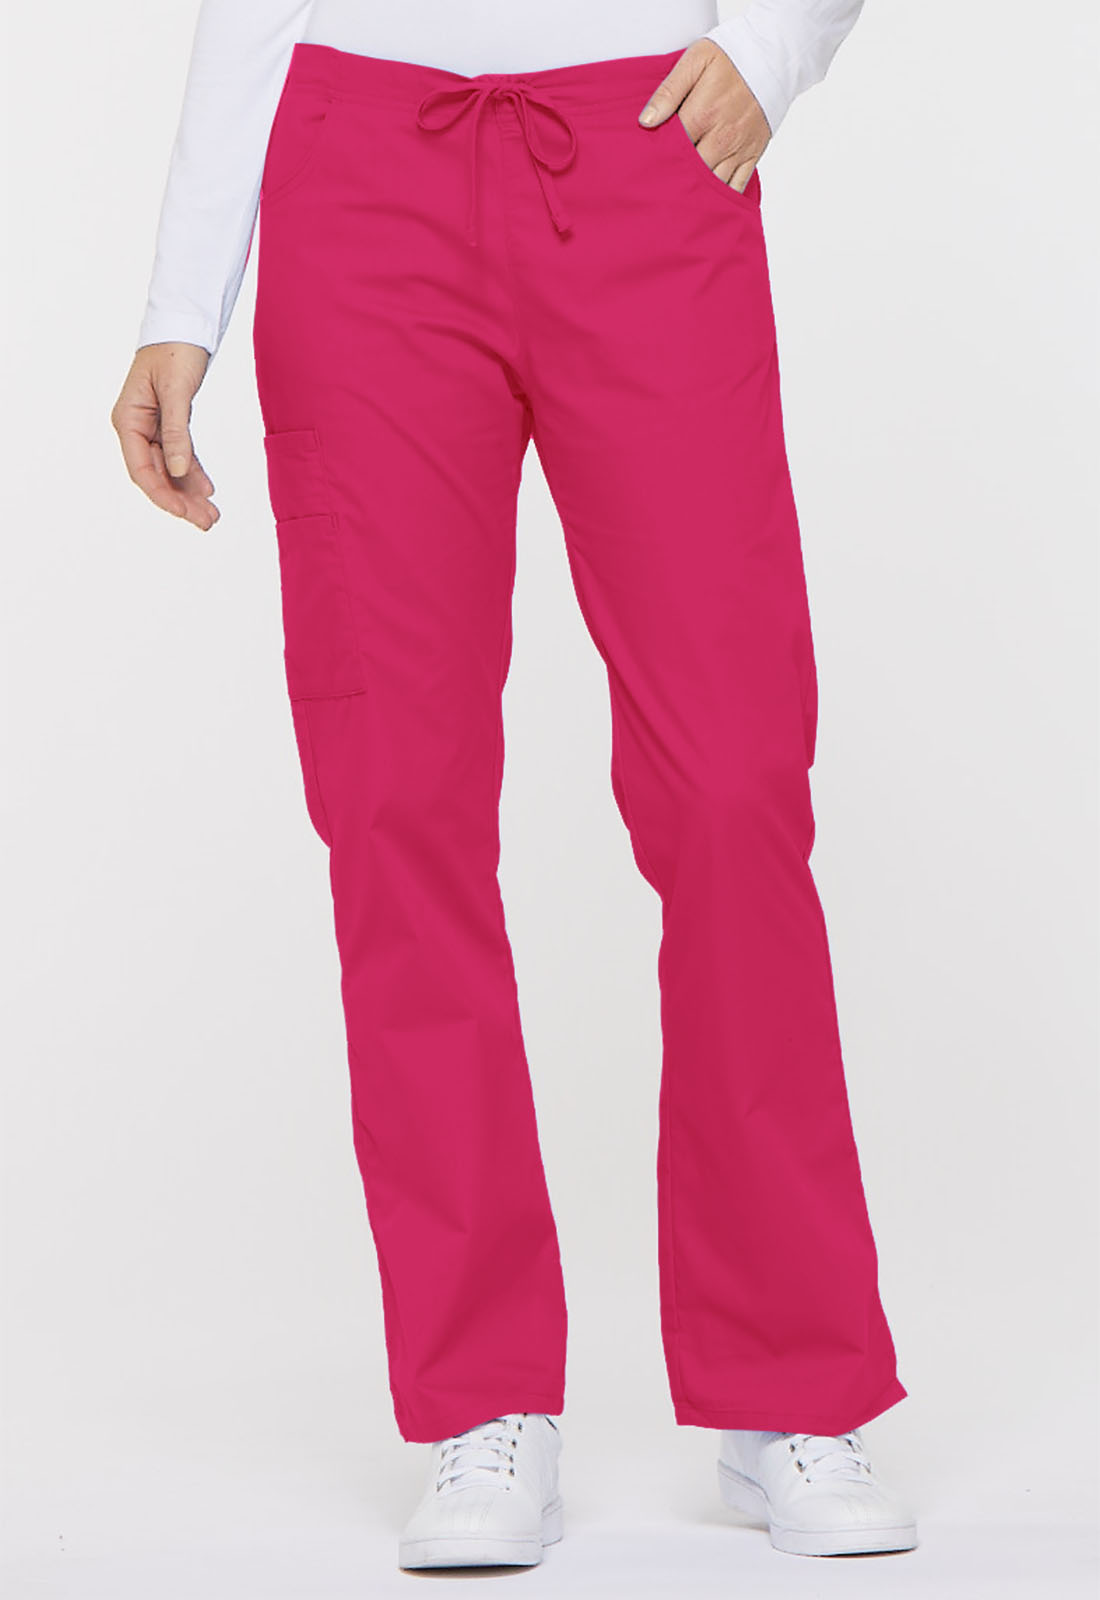 b755f170e05 EDS Signature Mid Rise Drawstring Cargo Pant in Hot Pink 86206-HPKZ ...